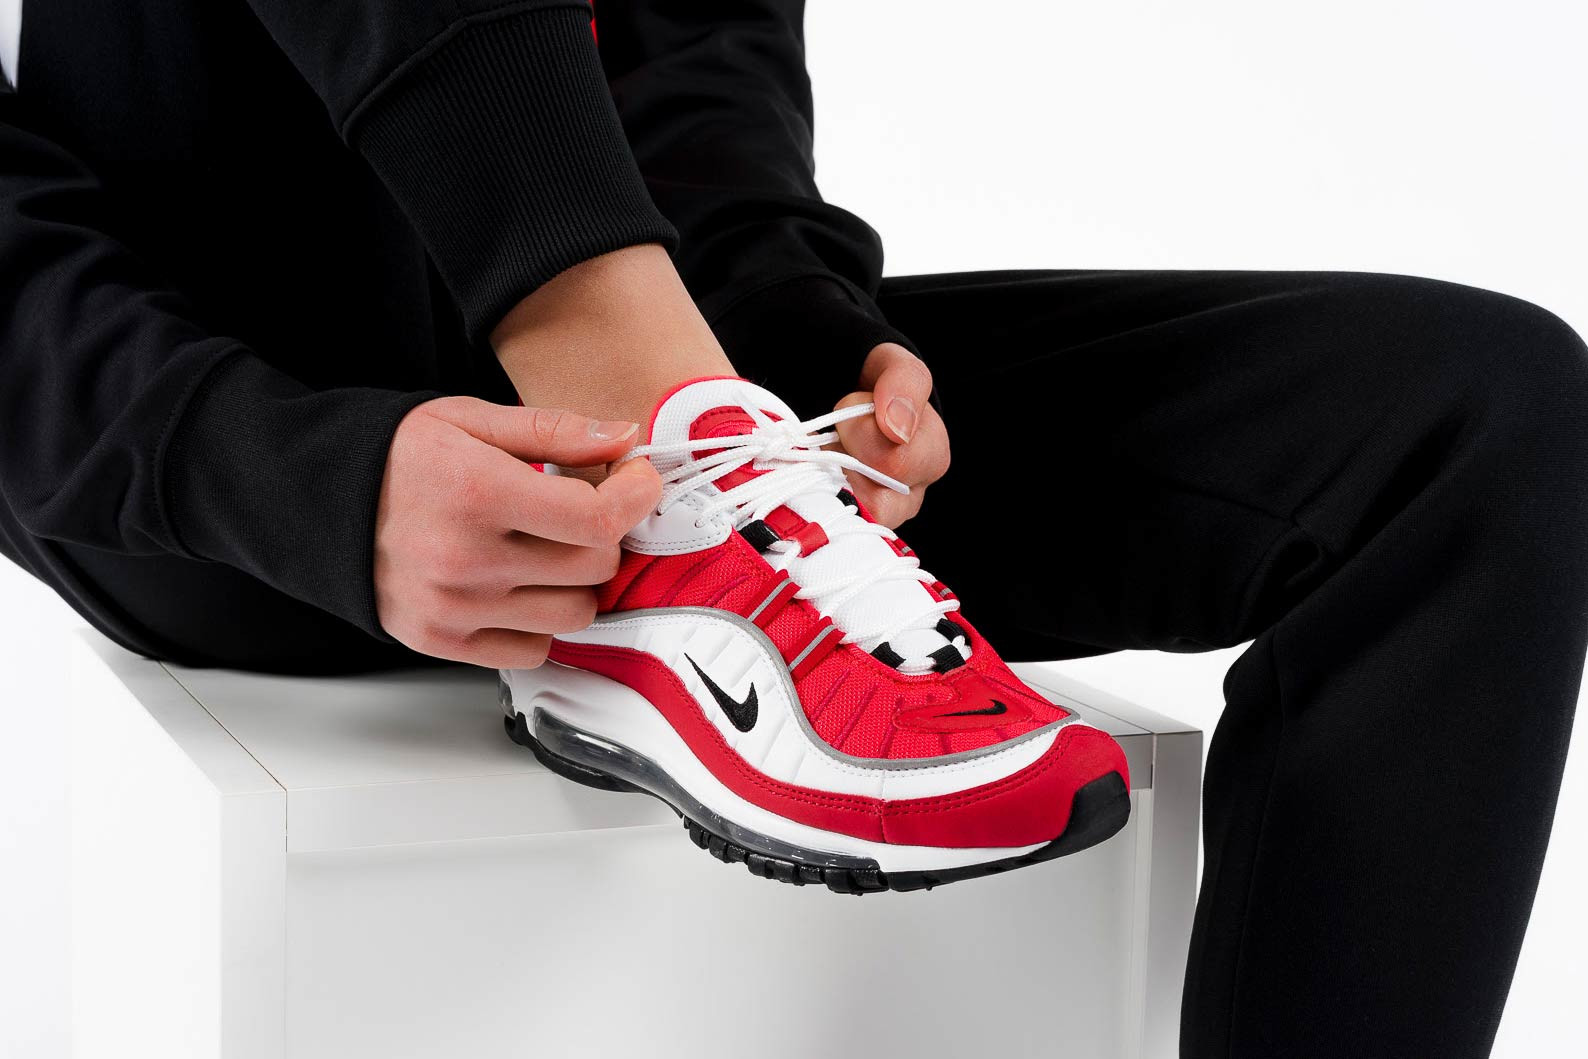 Nike Air Max 98 in Gym Red and White